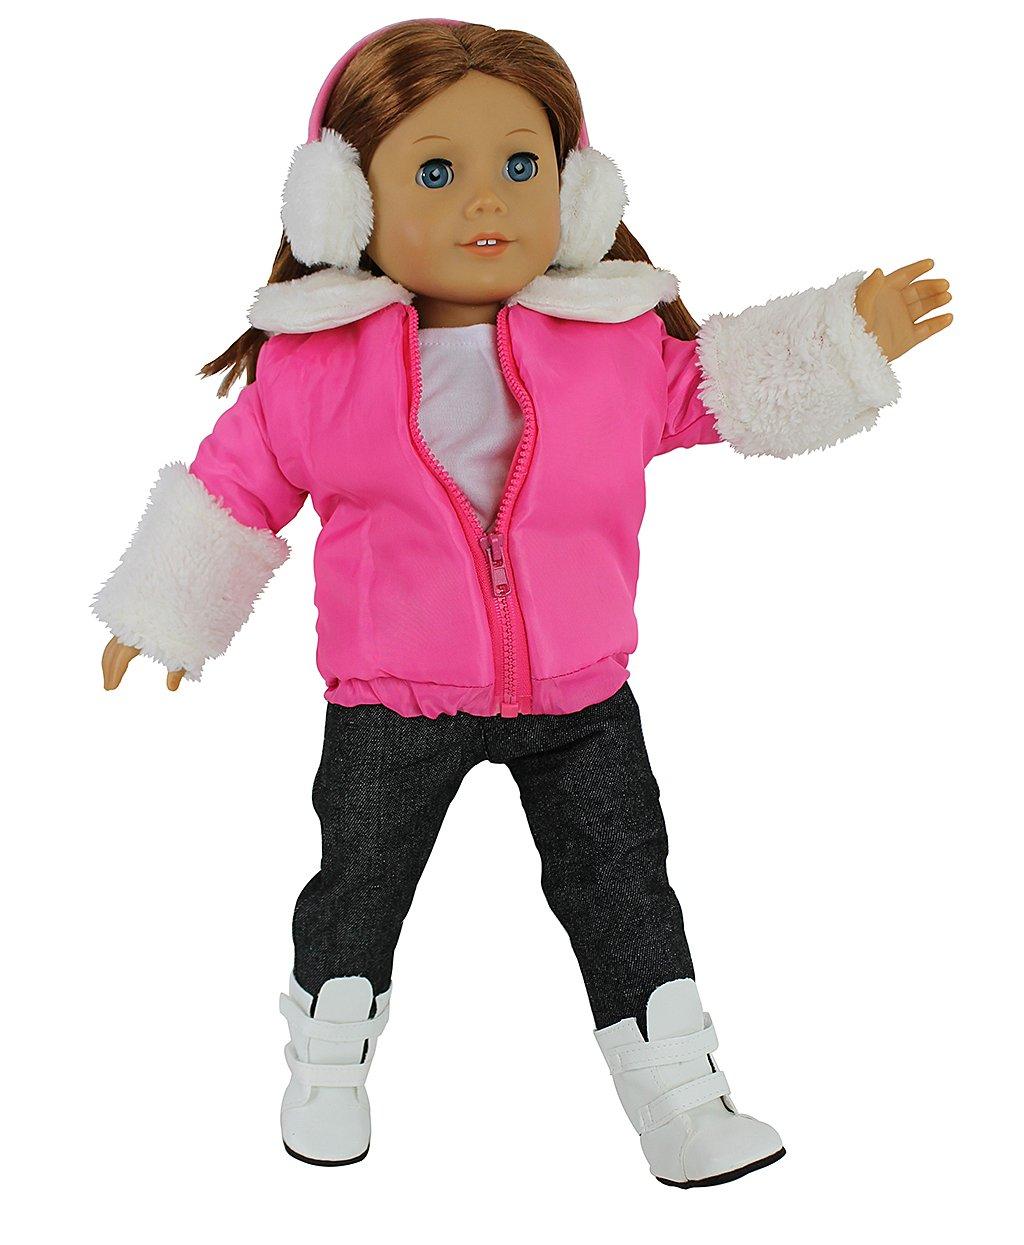 American Girl Doll Costumes Doll Clothes For American Girl